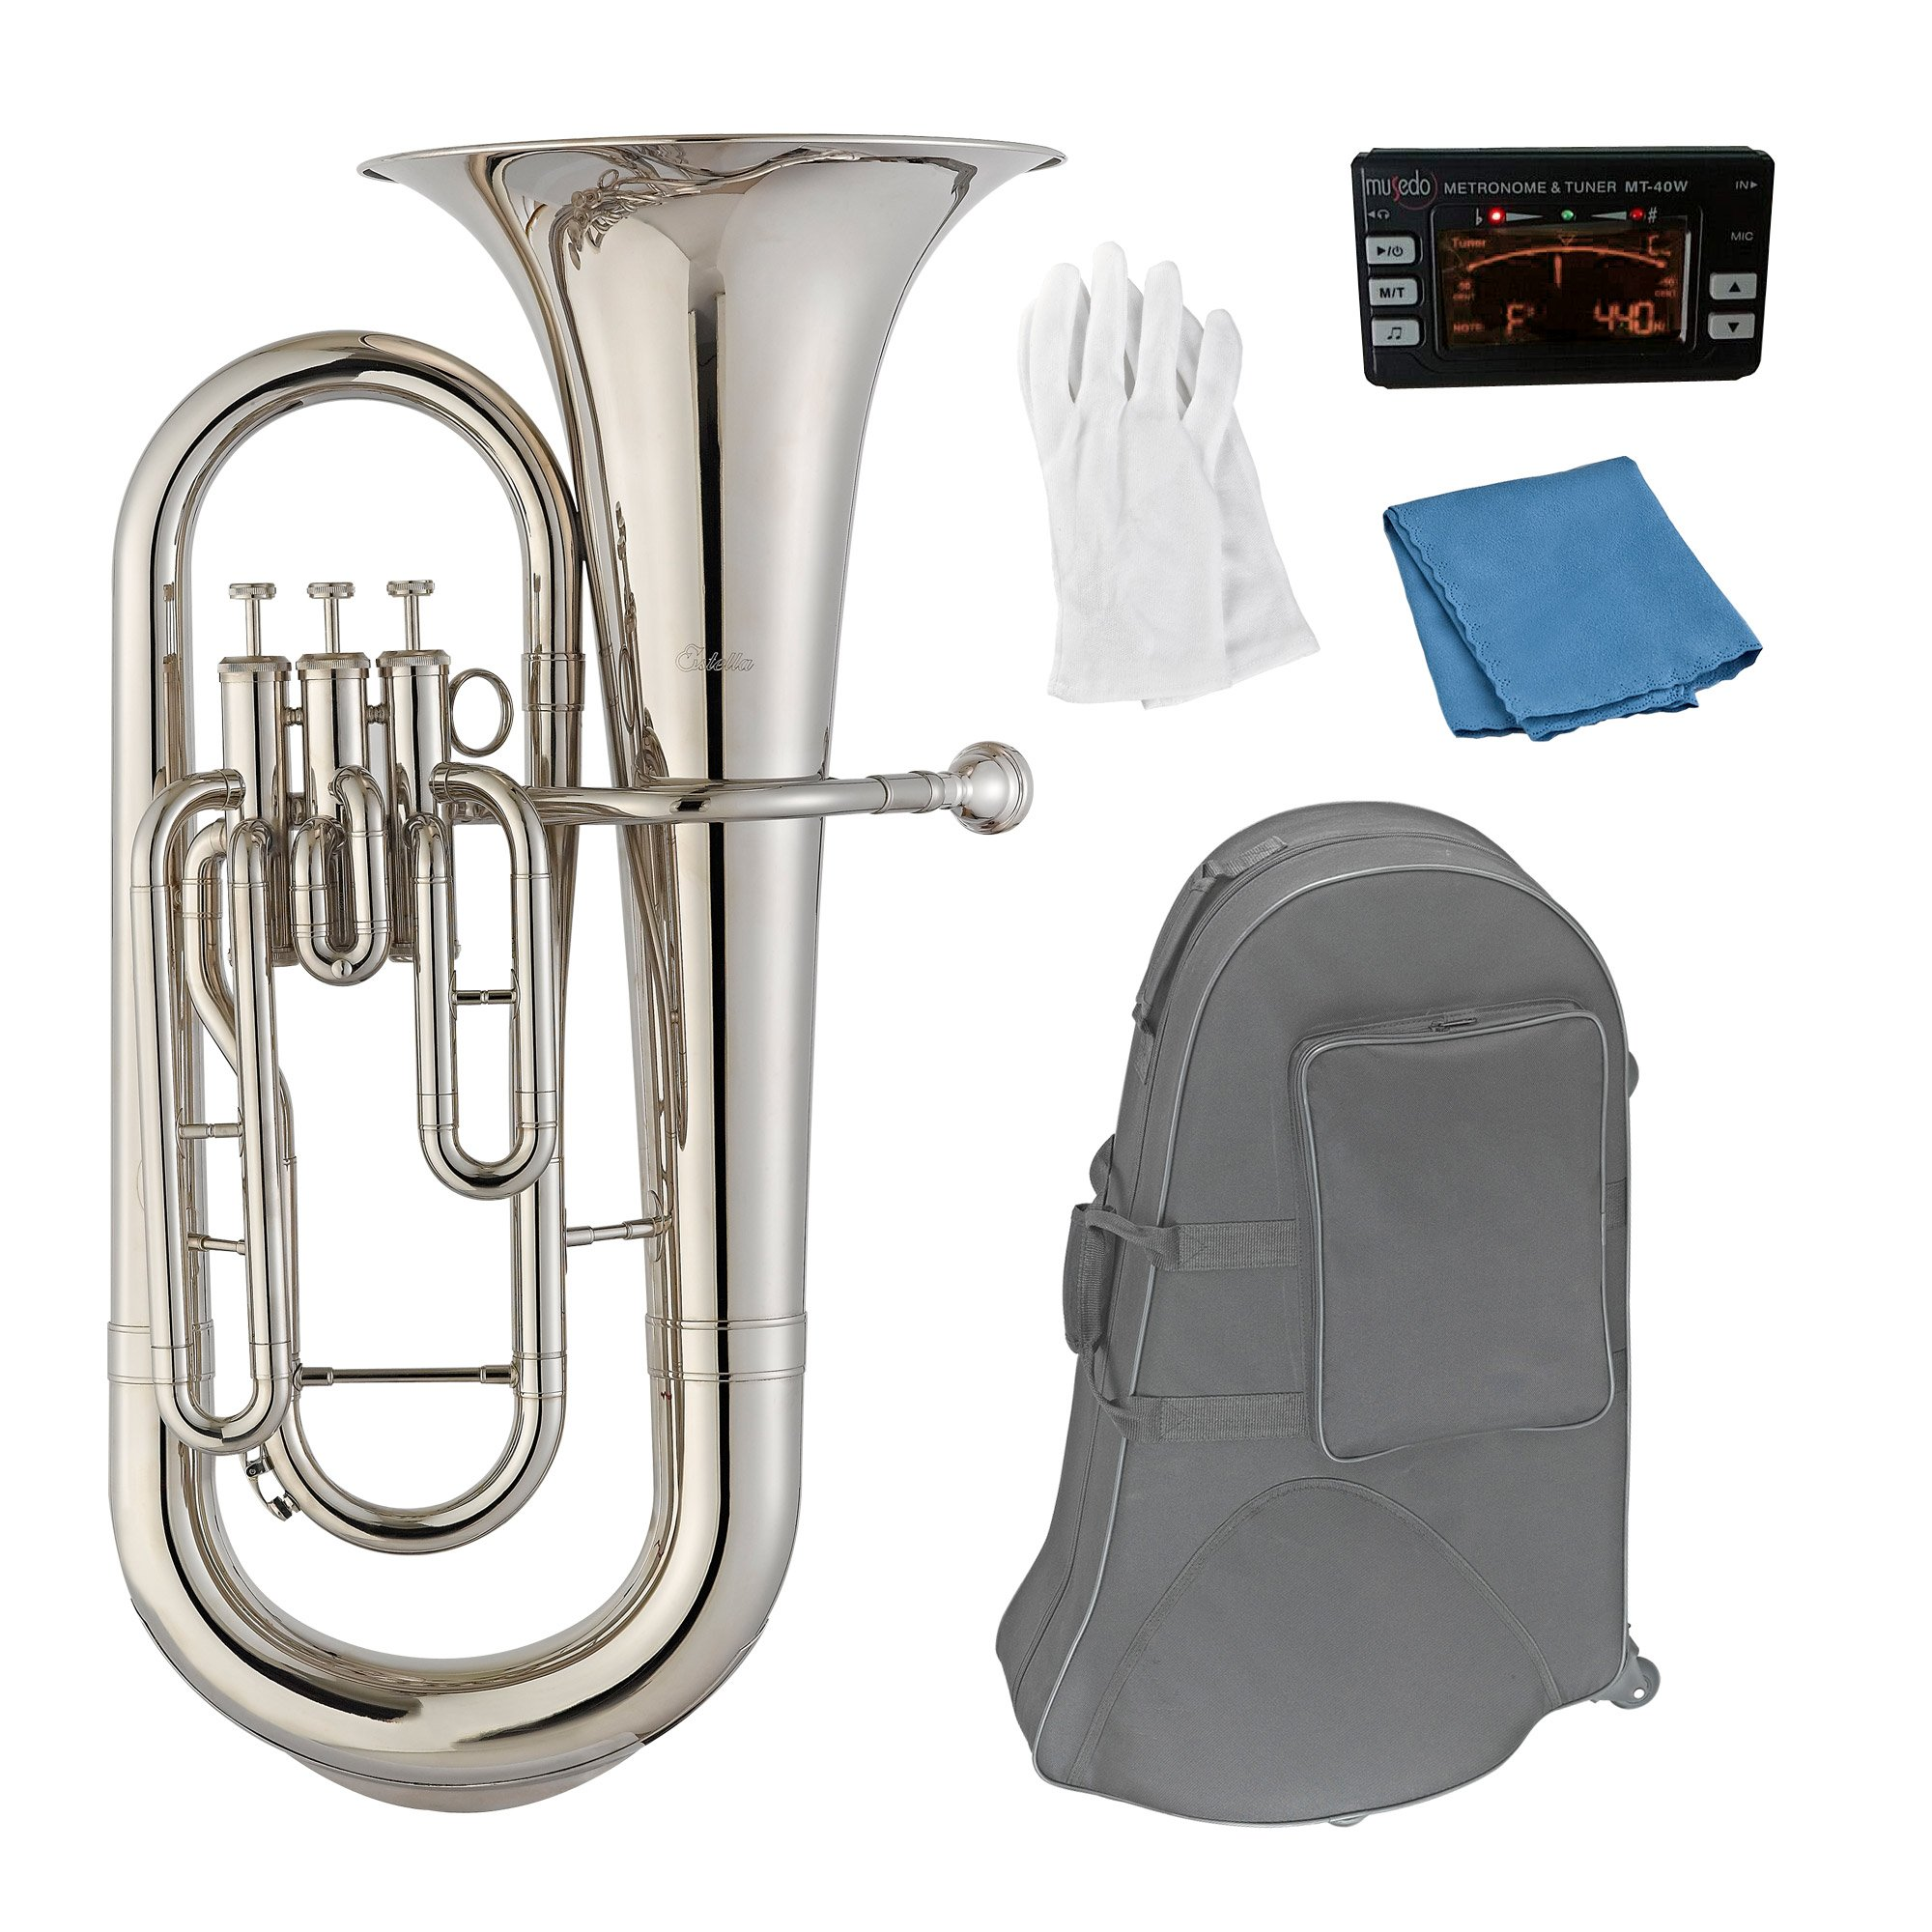 Estella EU200N Nickel Plated B Flat Euphonium with Stainless Steel Pistons by Estella (Image #1)